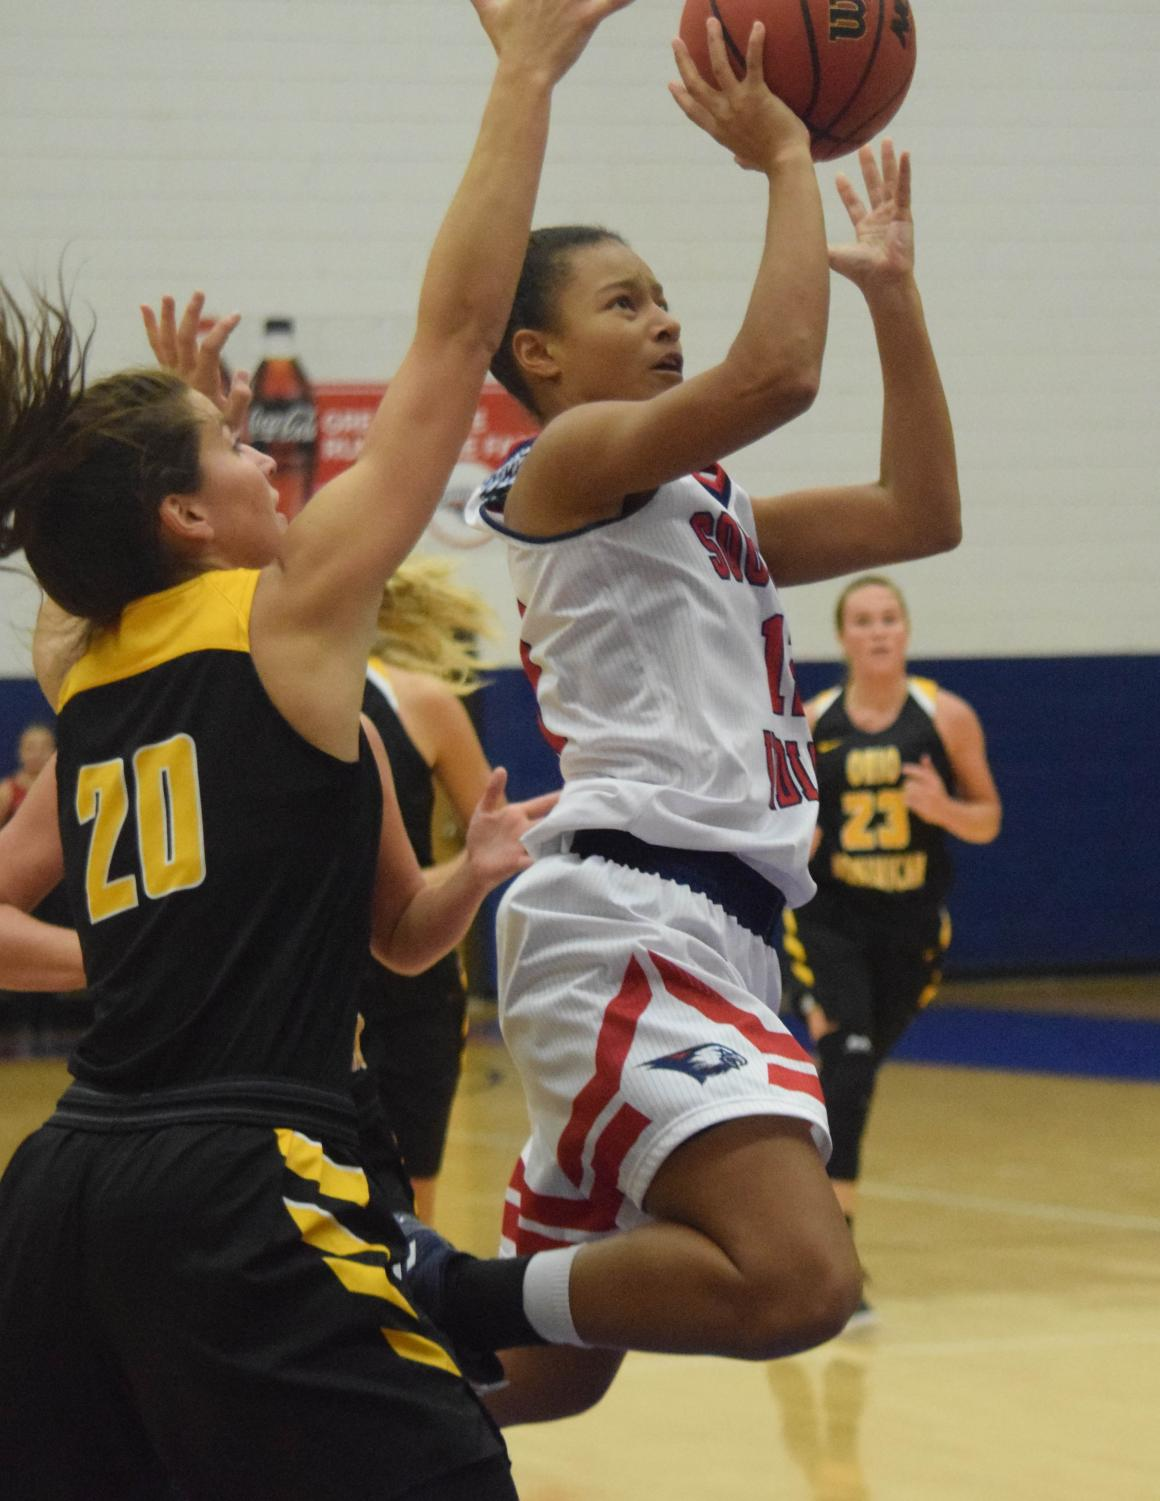 Ashley+Johnson%2C+sophomore+guard%2C+drives+to+the+basket+for+a+layup.